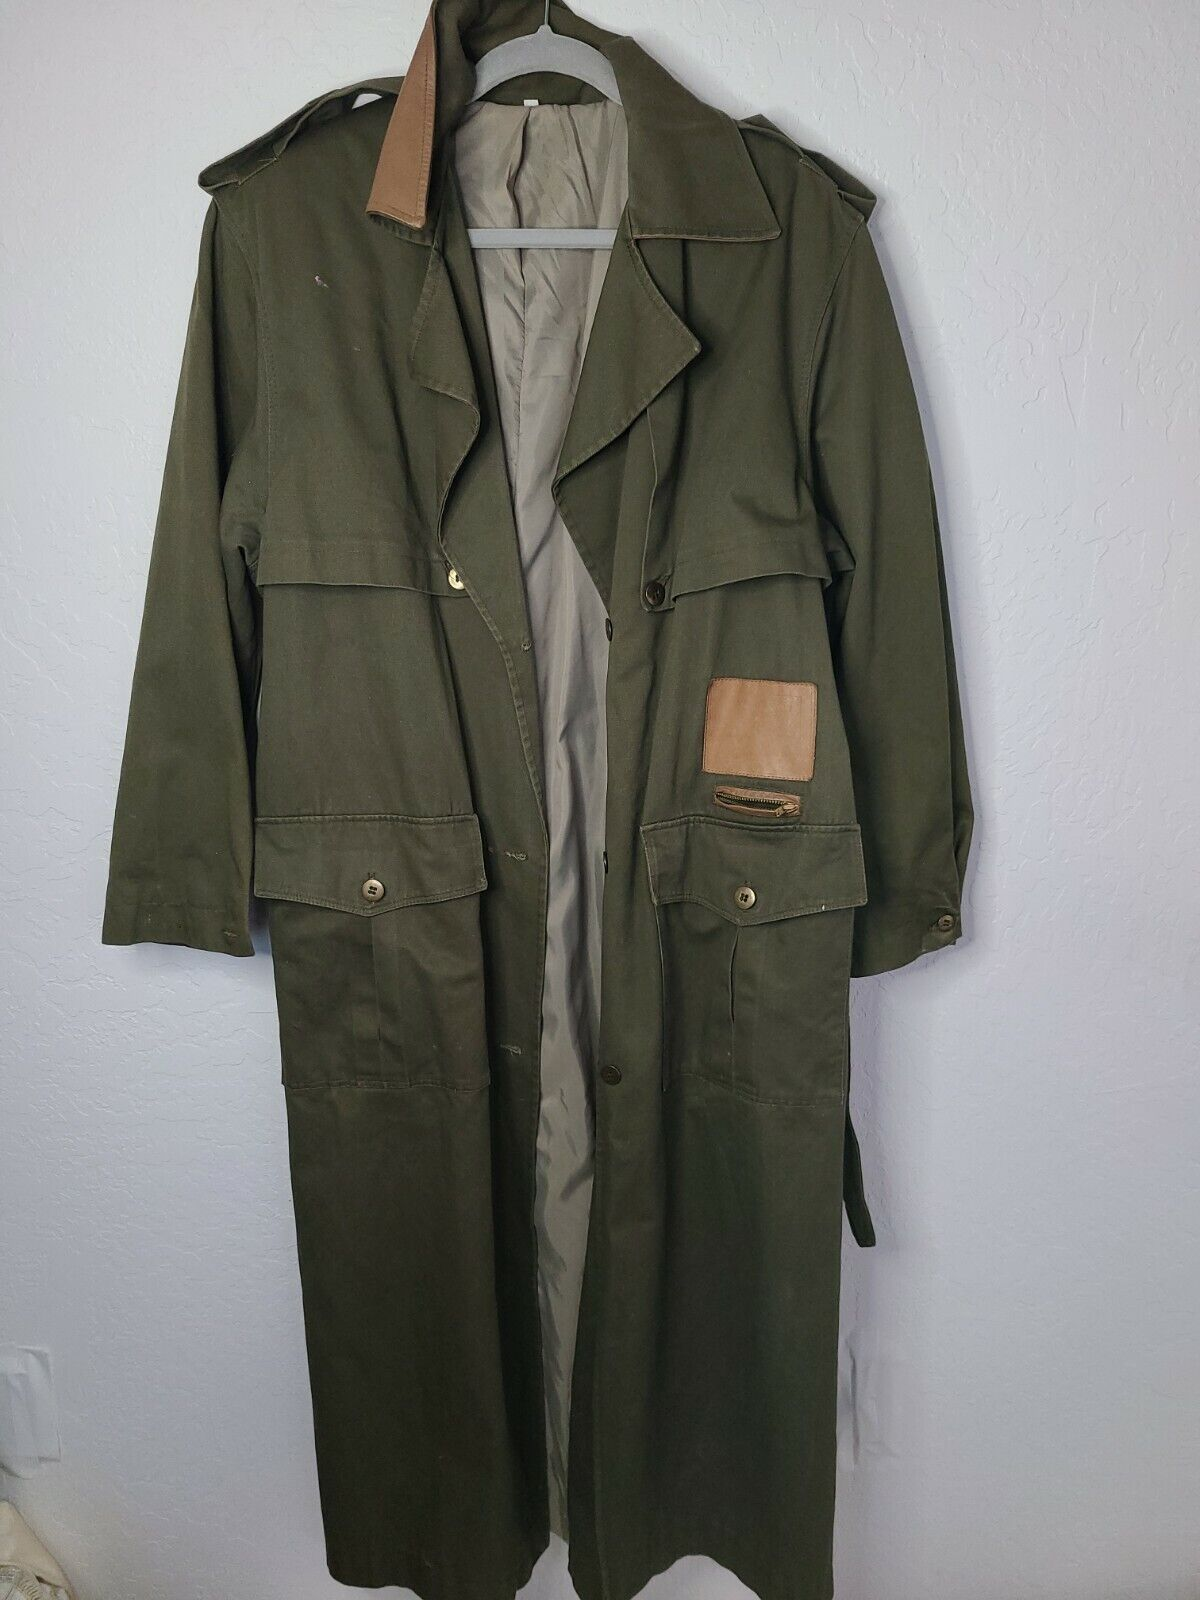 Classic Military Style Trench Coat, Olive Army Gr… - image 1